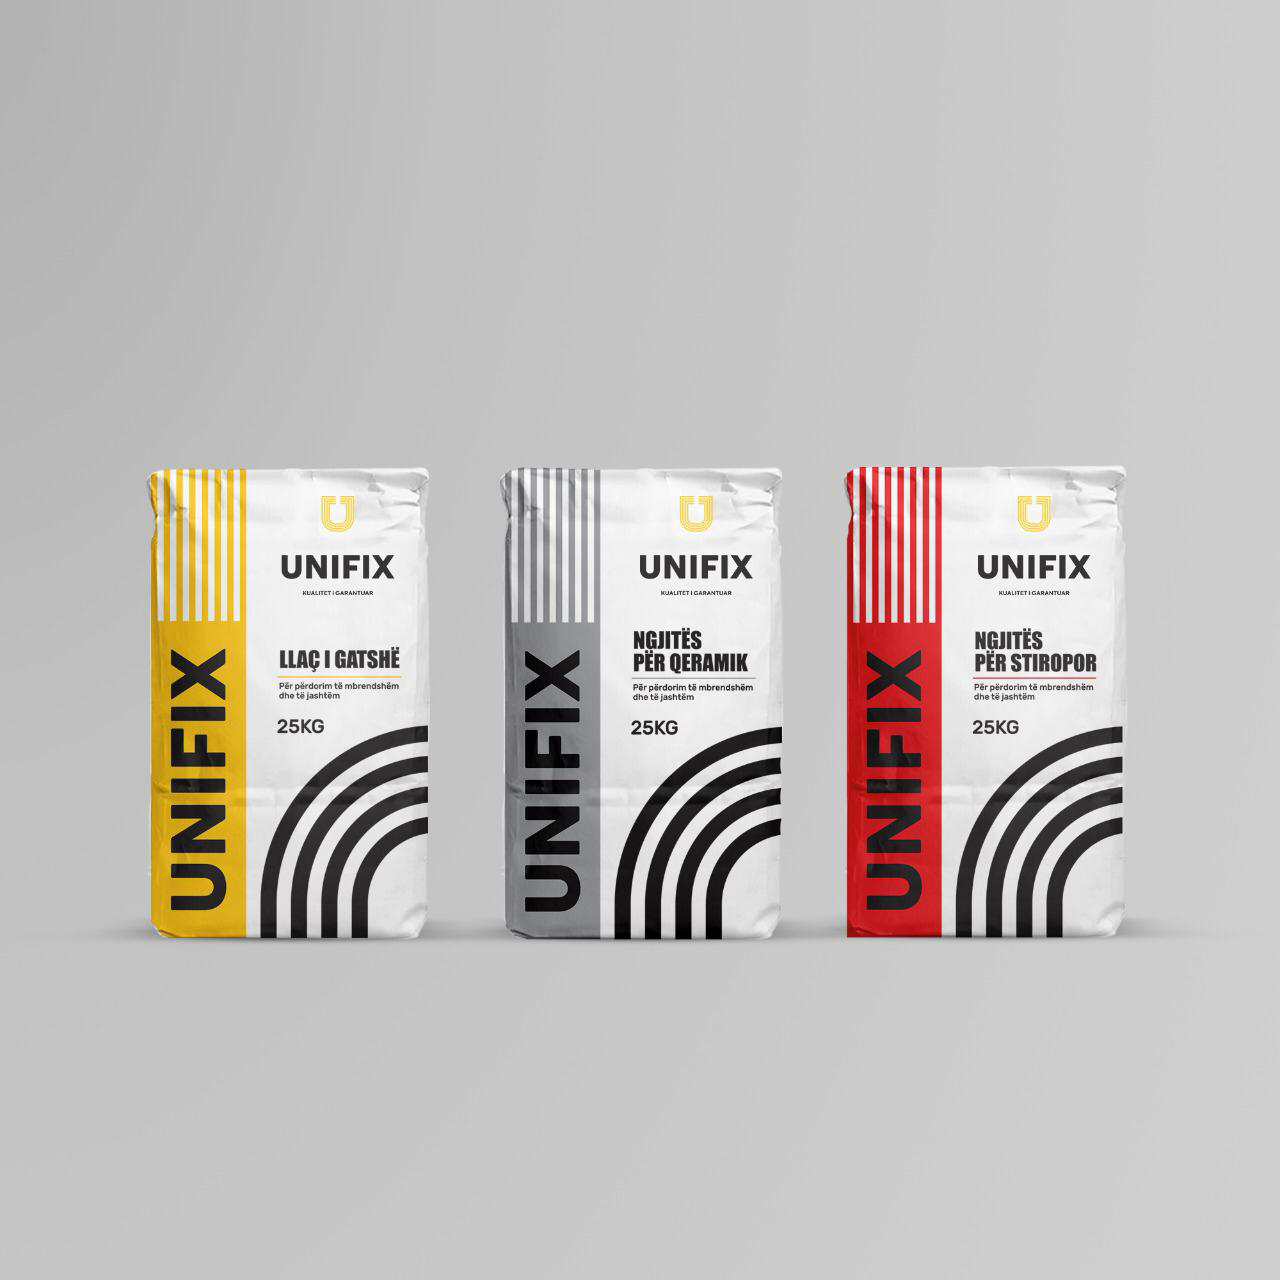 Stupa Creative Studio Are Behind the New Brand Identity and Packaging Design for Unifix